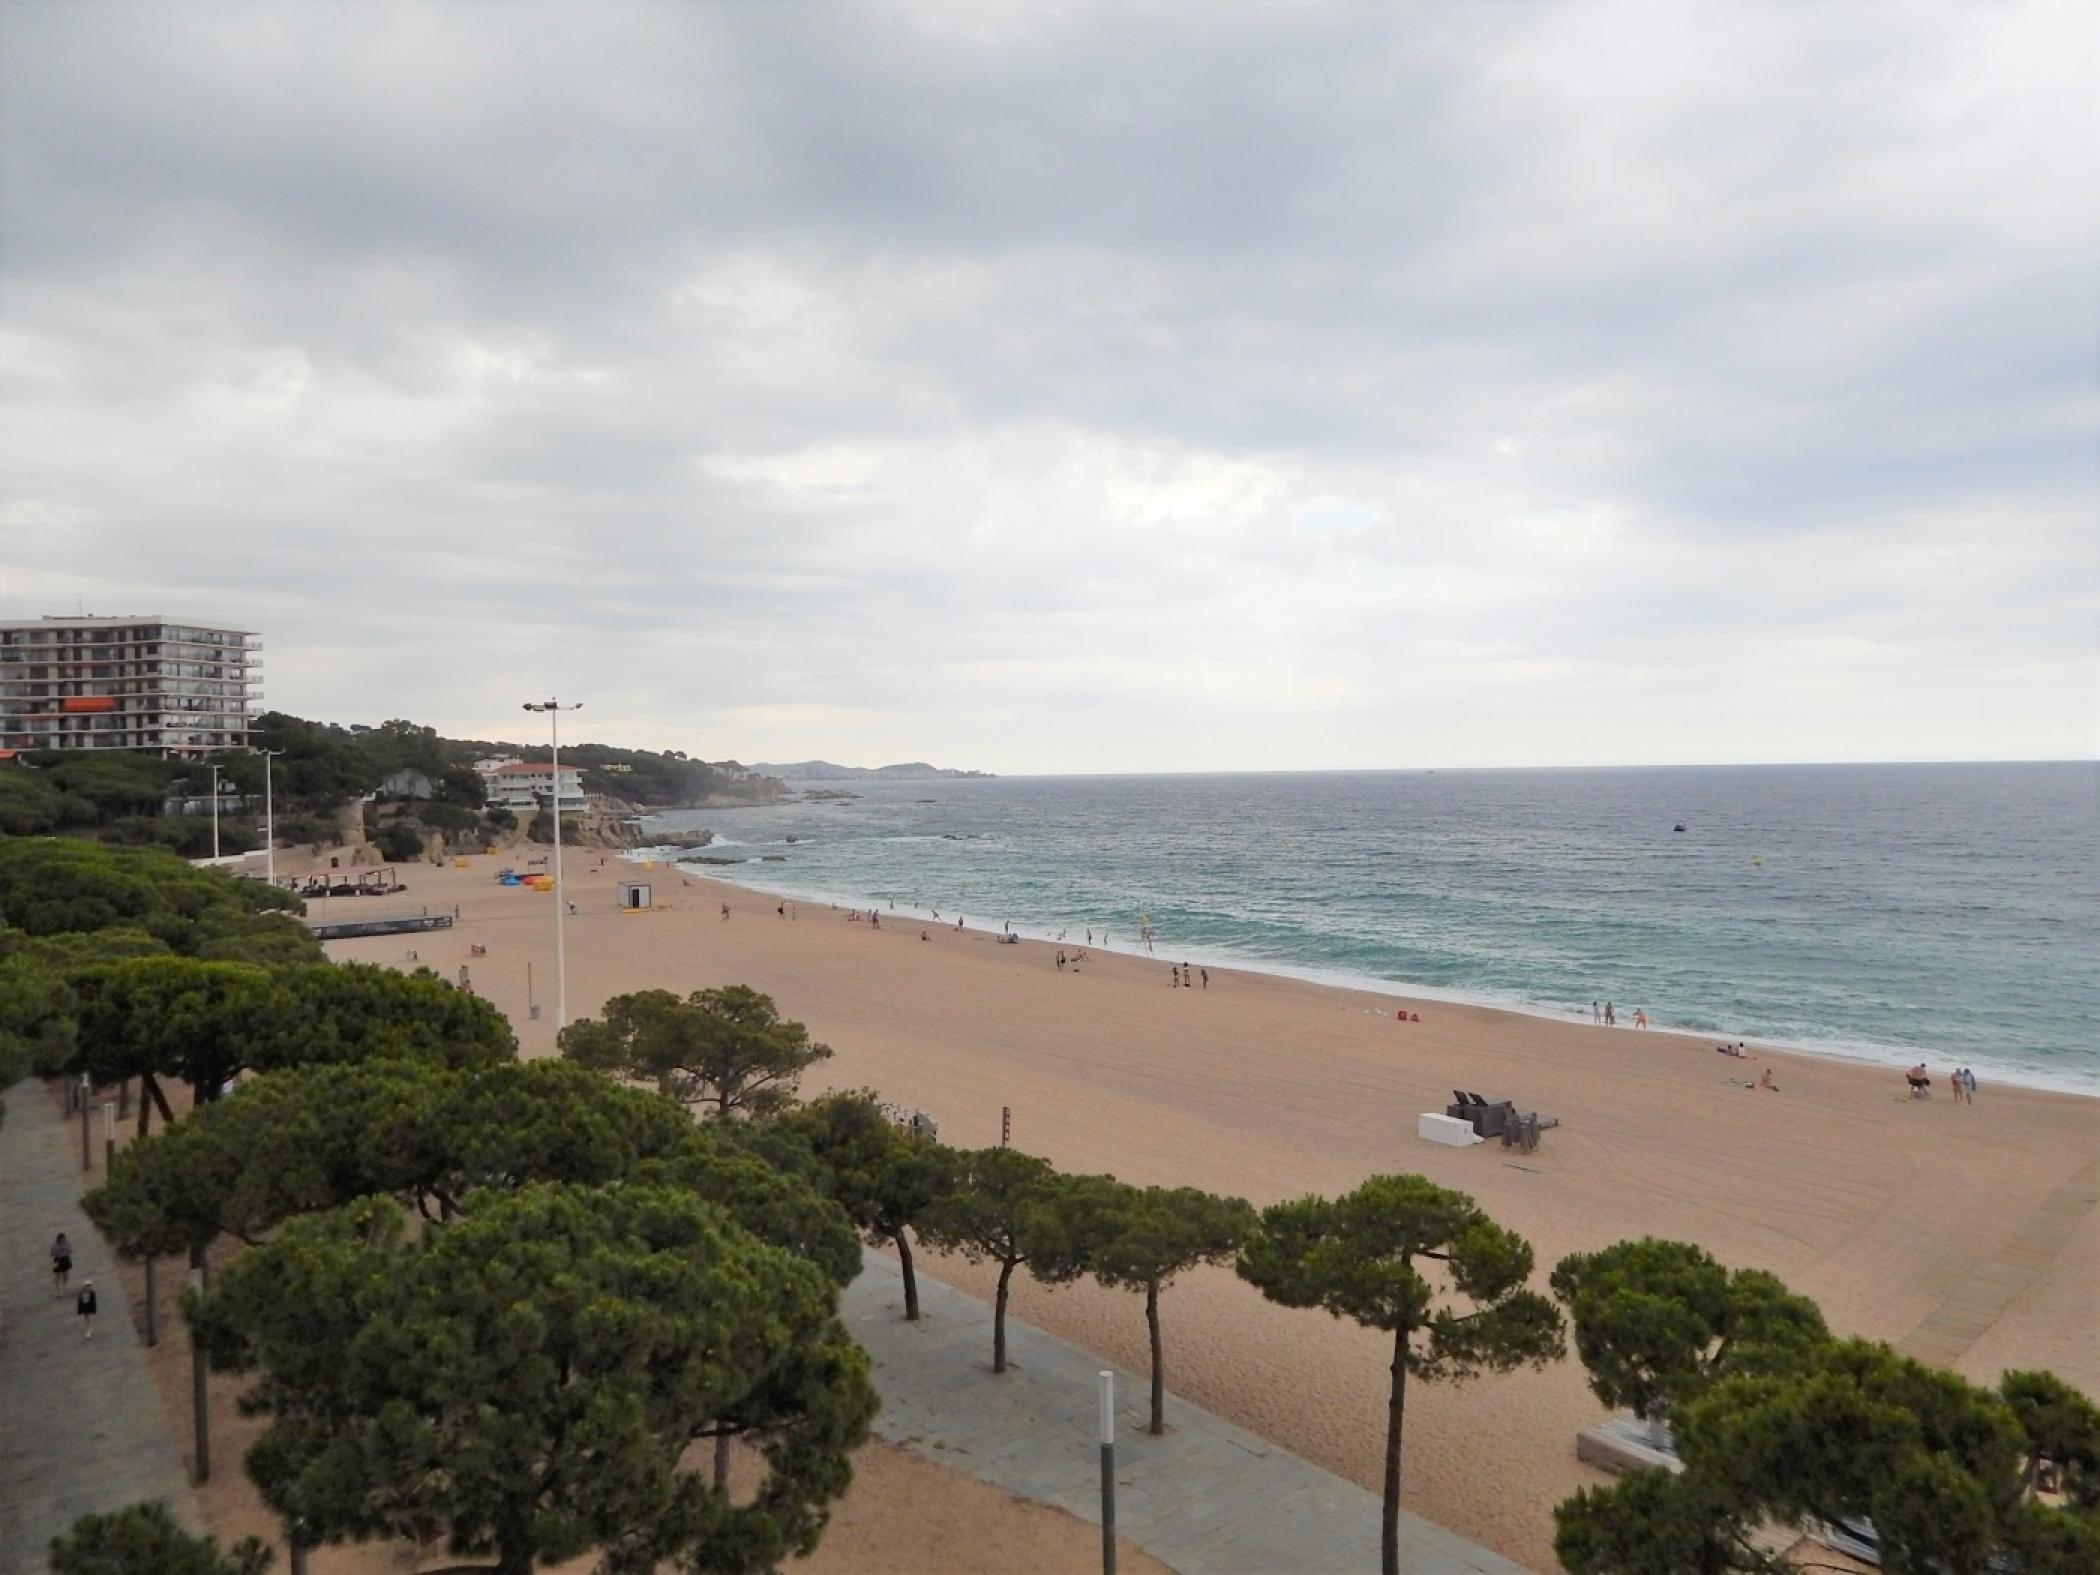 аренда квартира для Platja d'Aro - Girorooms Platja d'Aro Alexandra B Sea Views - 19